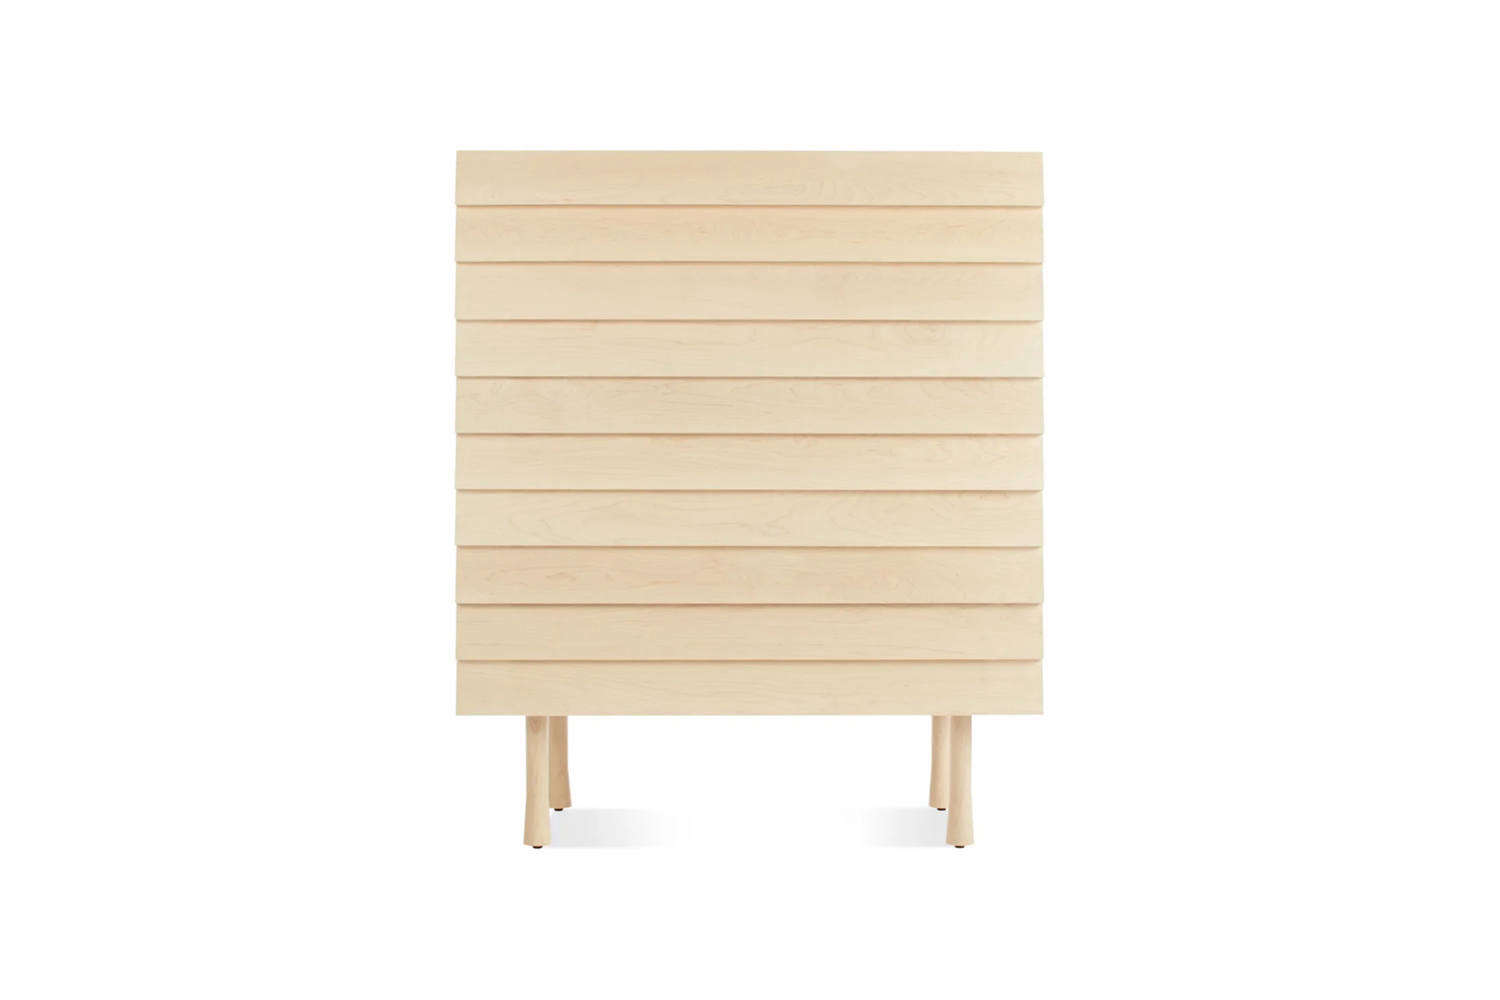 The Lap Tall 4 Drawer Dresser, shown in Whitewashed Maple, is $